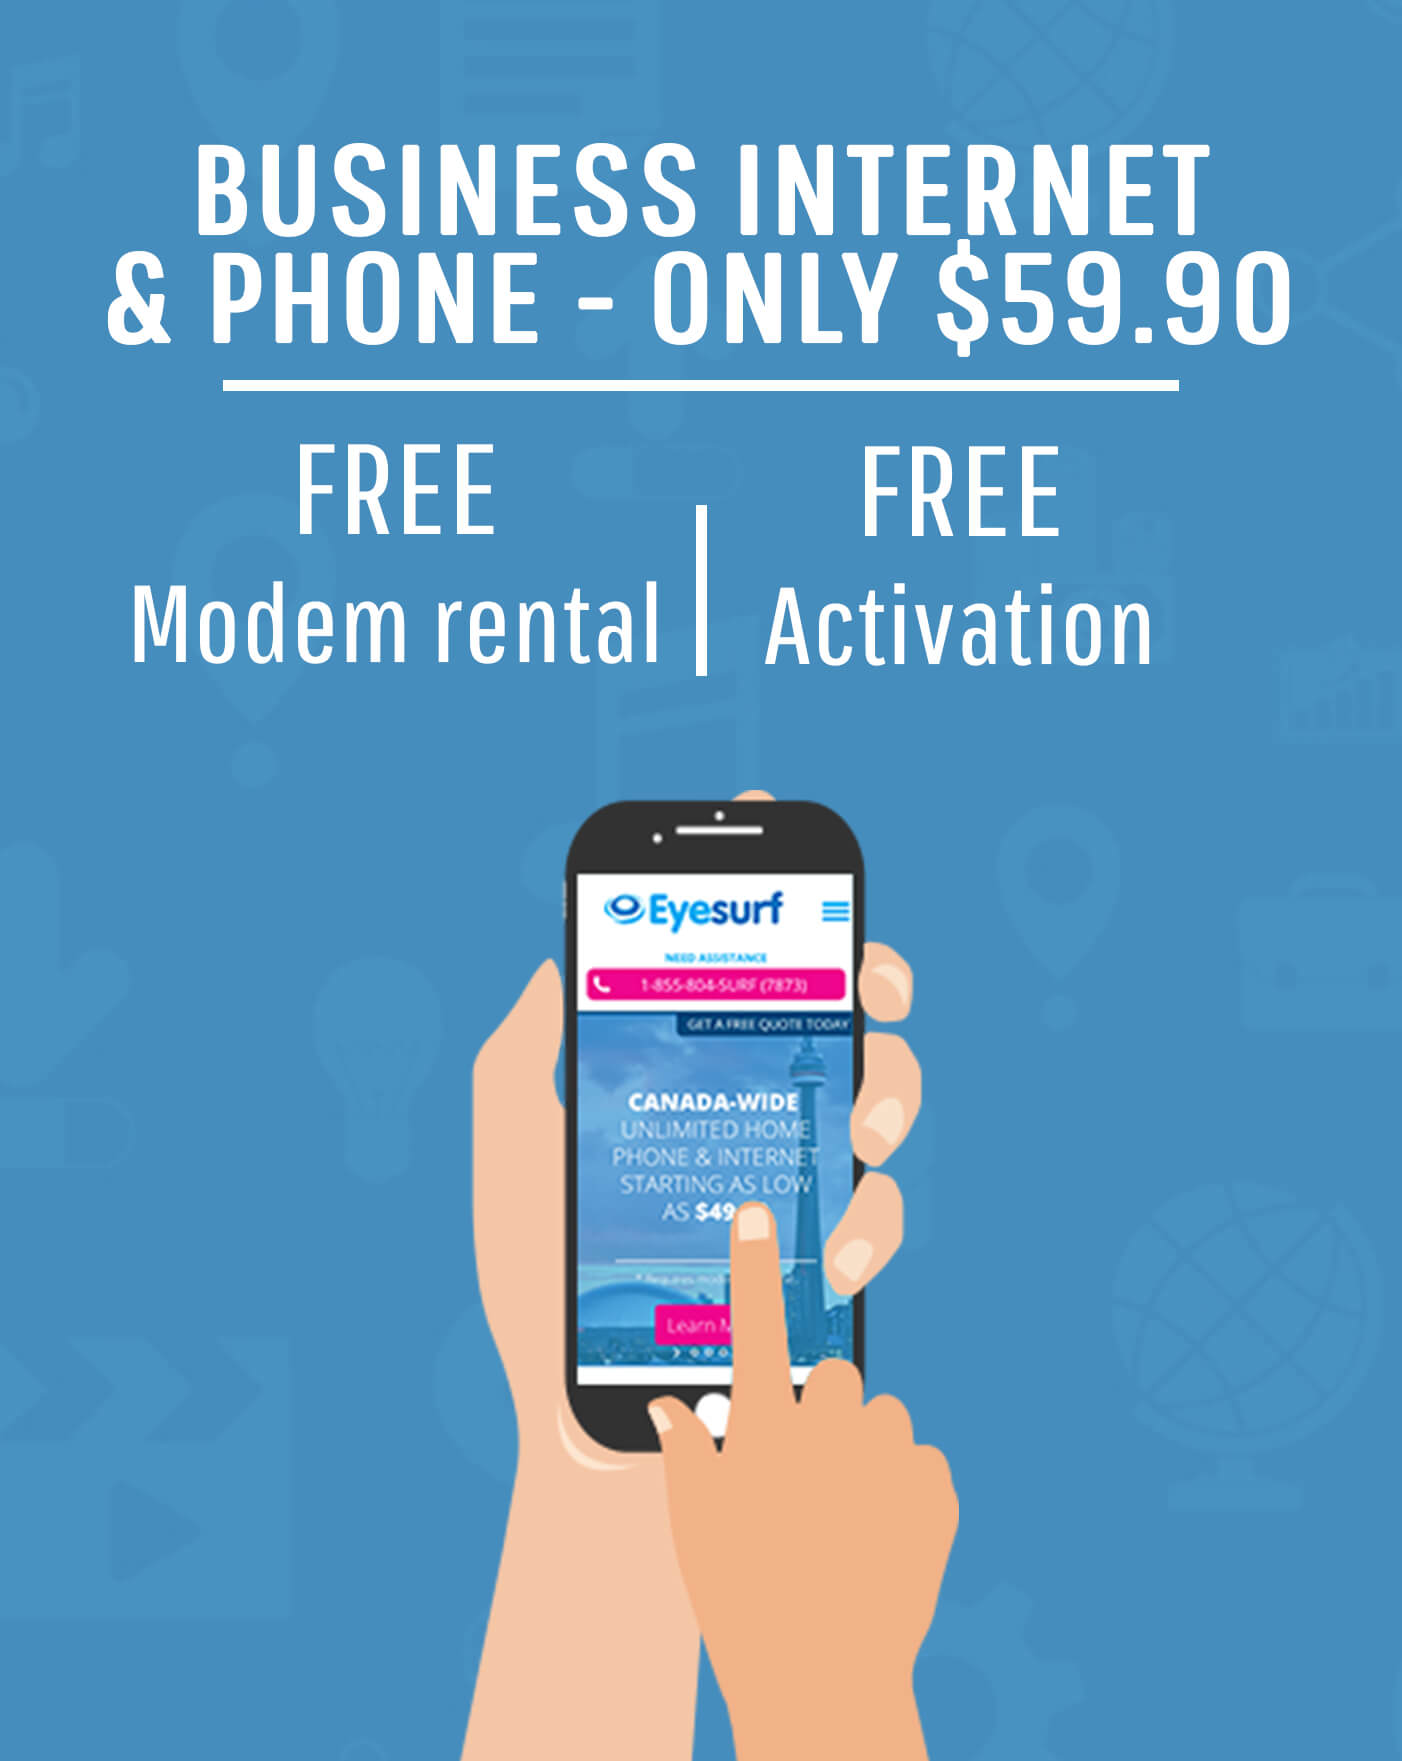 Get set up for business with Eyesurf - package your internet and phone, all for $59.90!